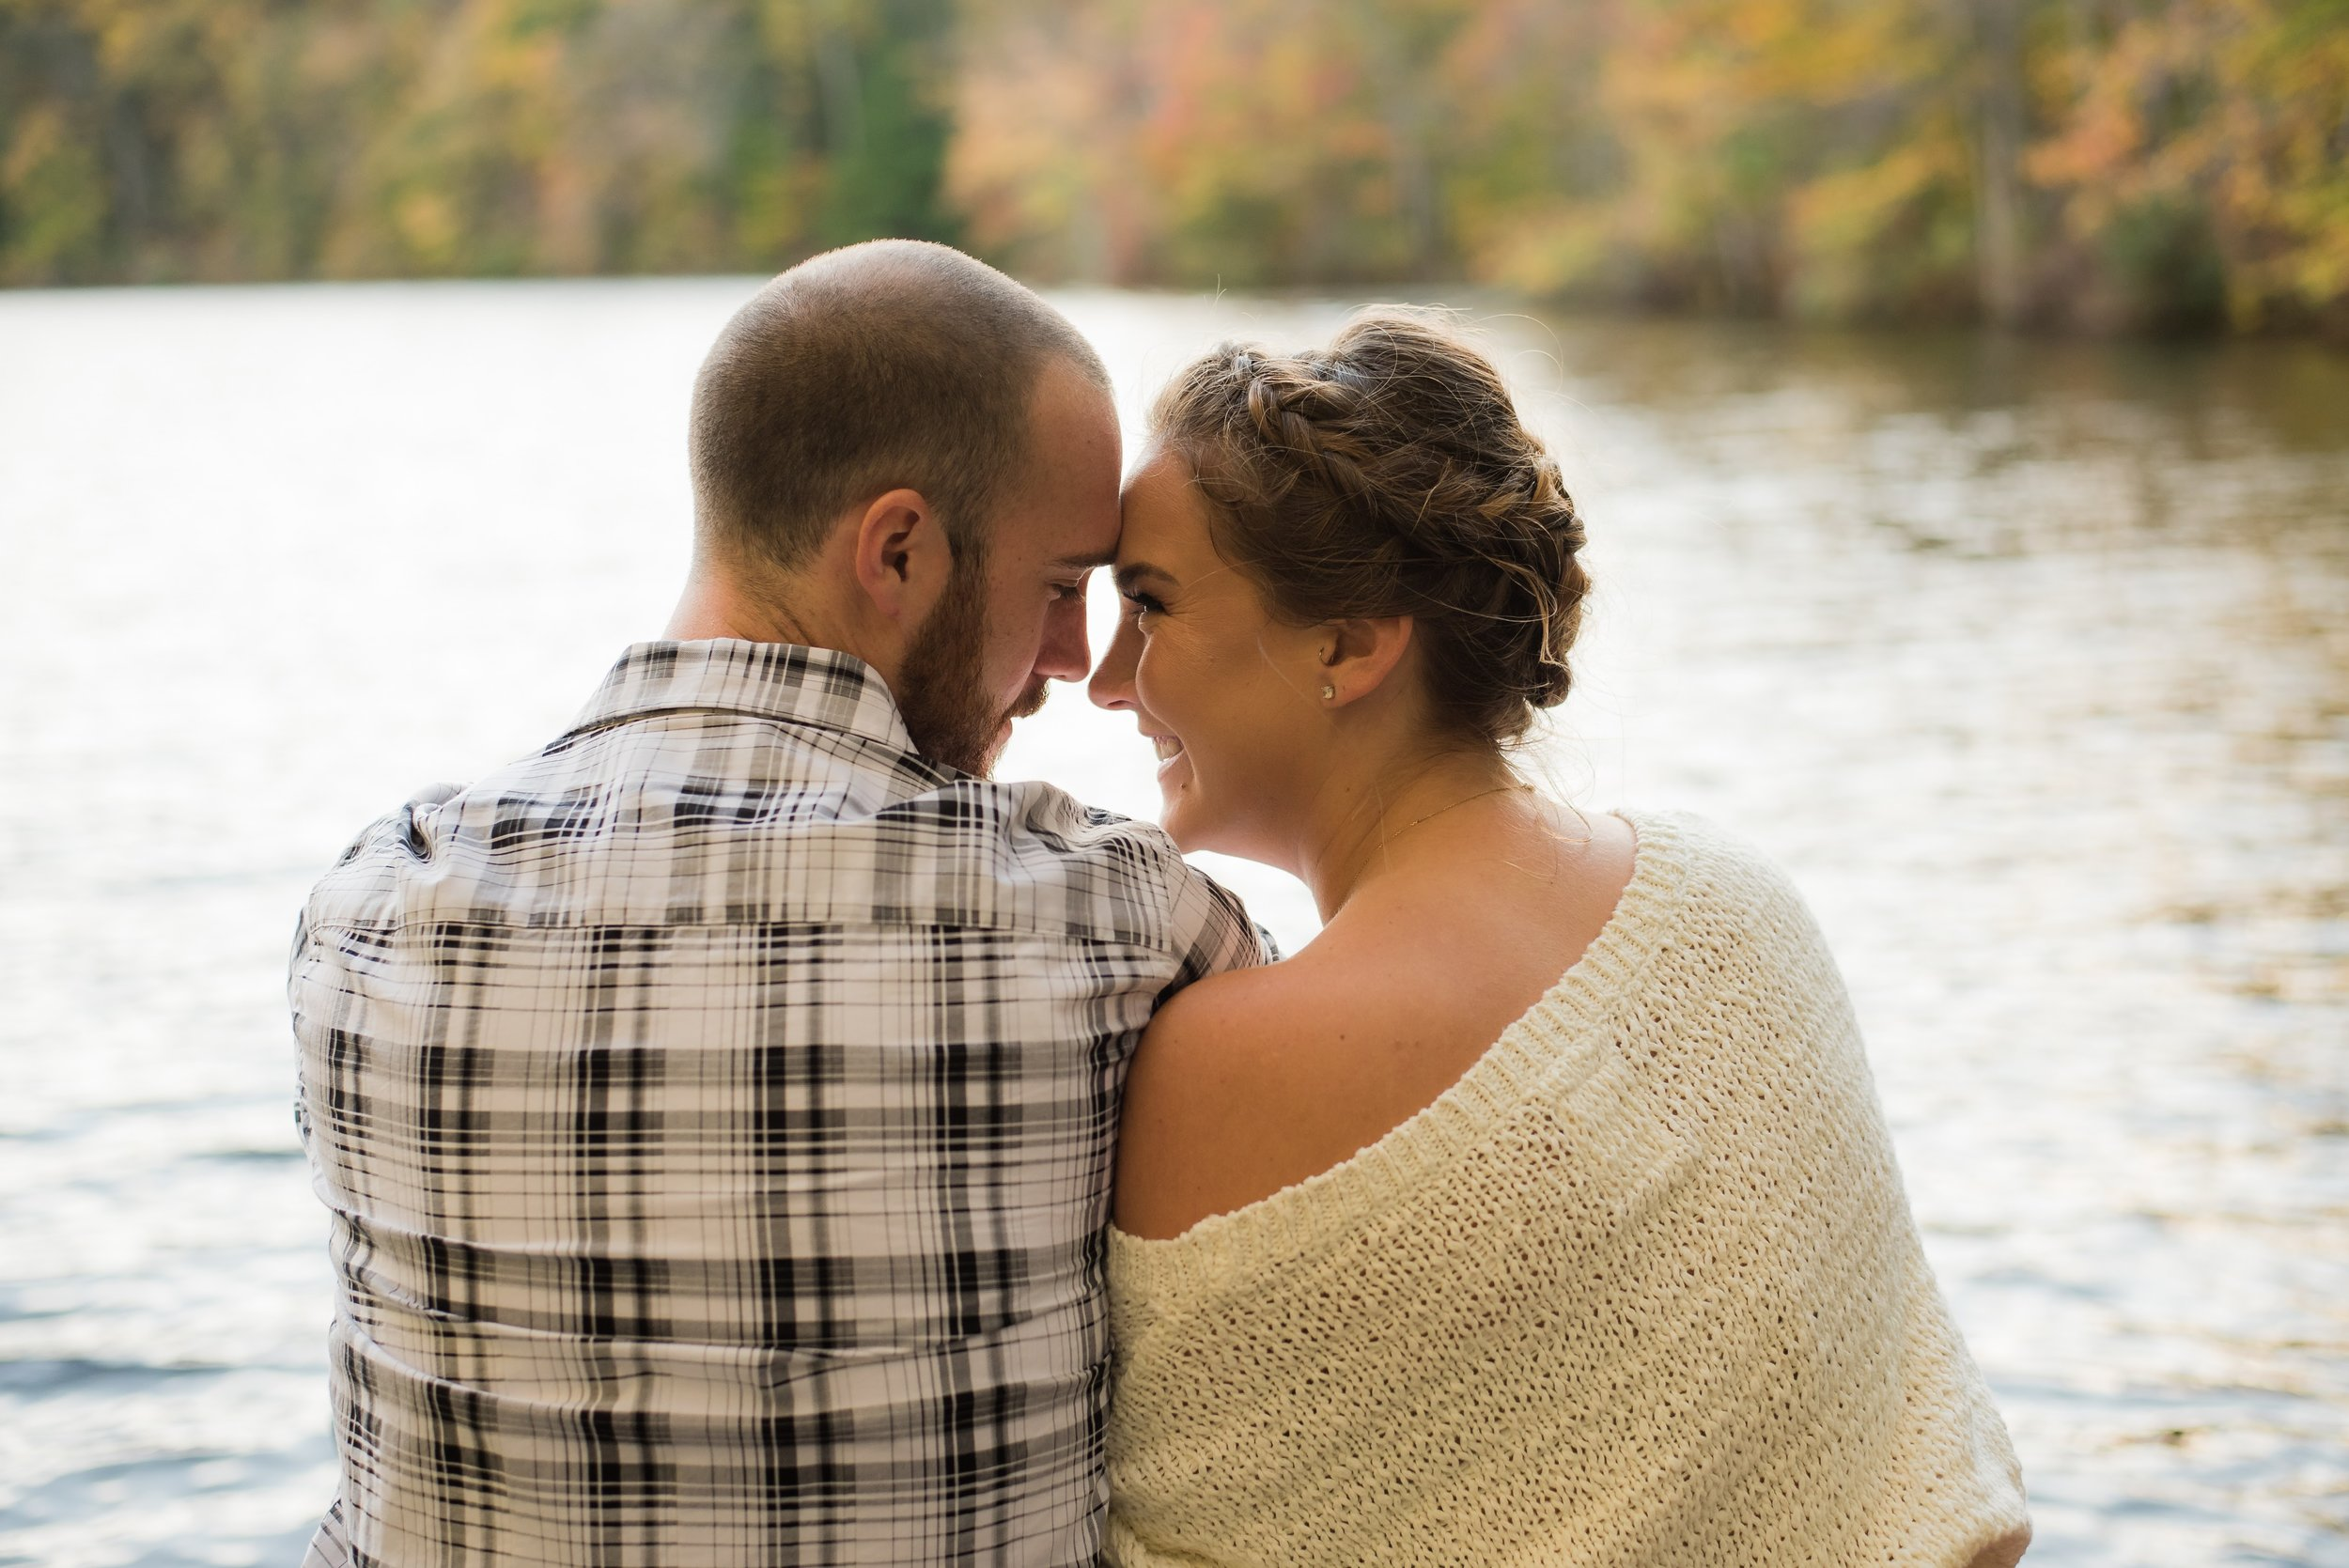 _KLE5199Knothe Engagement_.jpg